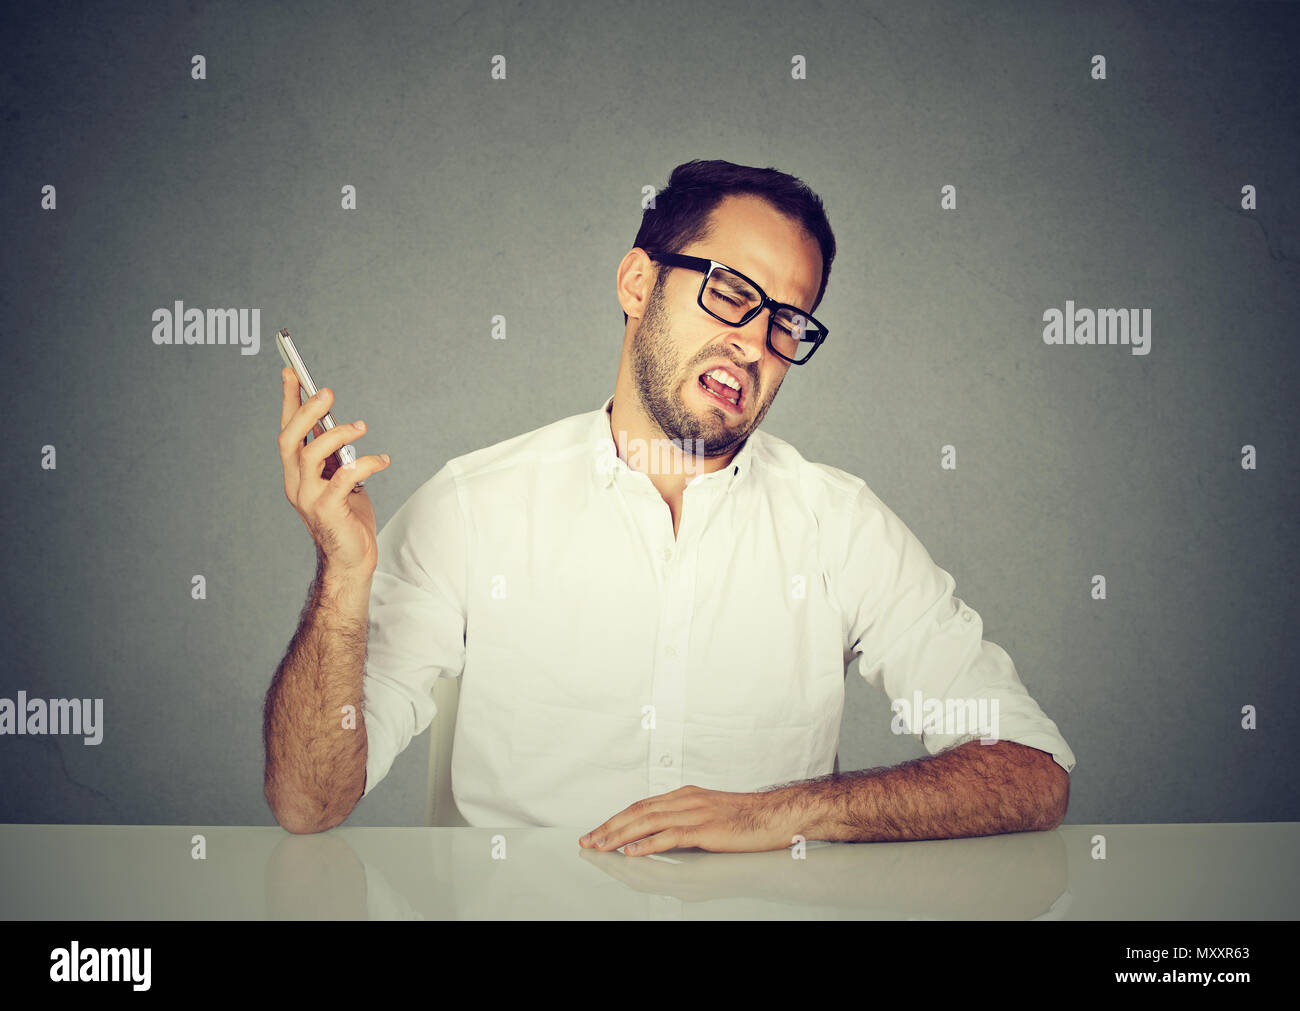 Man in white shirt and glasses grimacing and ignoring conversation partner while having phone call - Stock Image